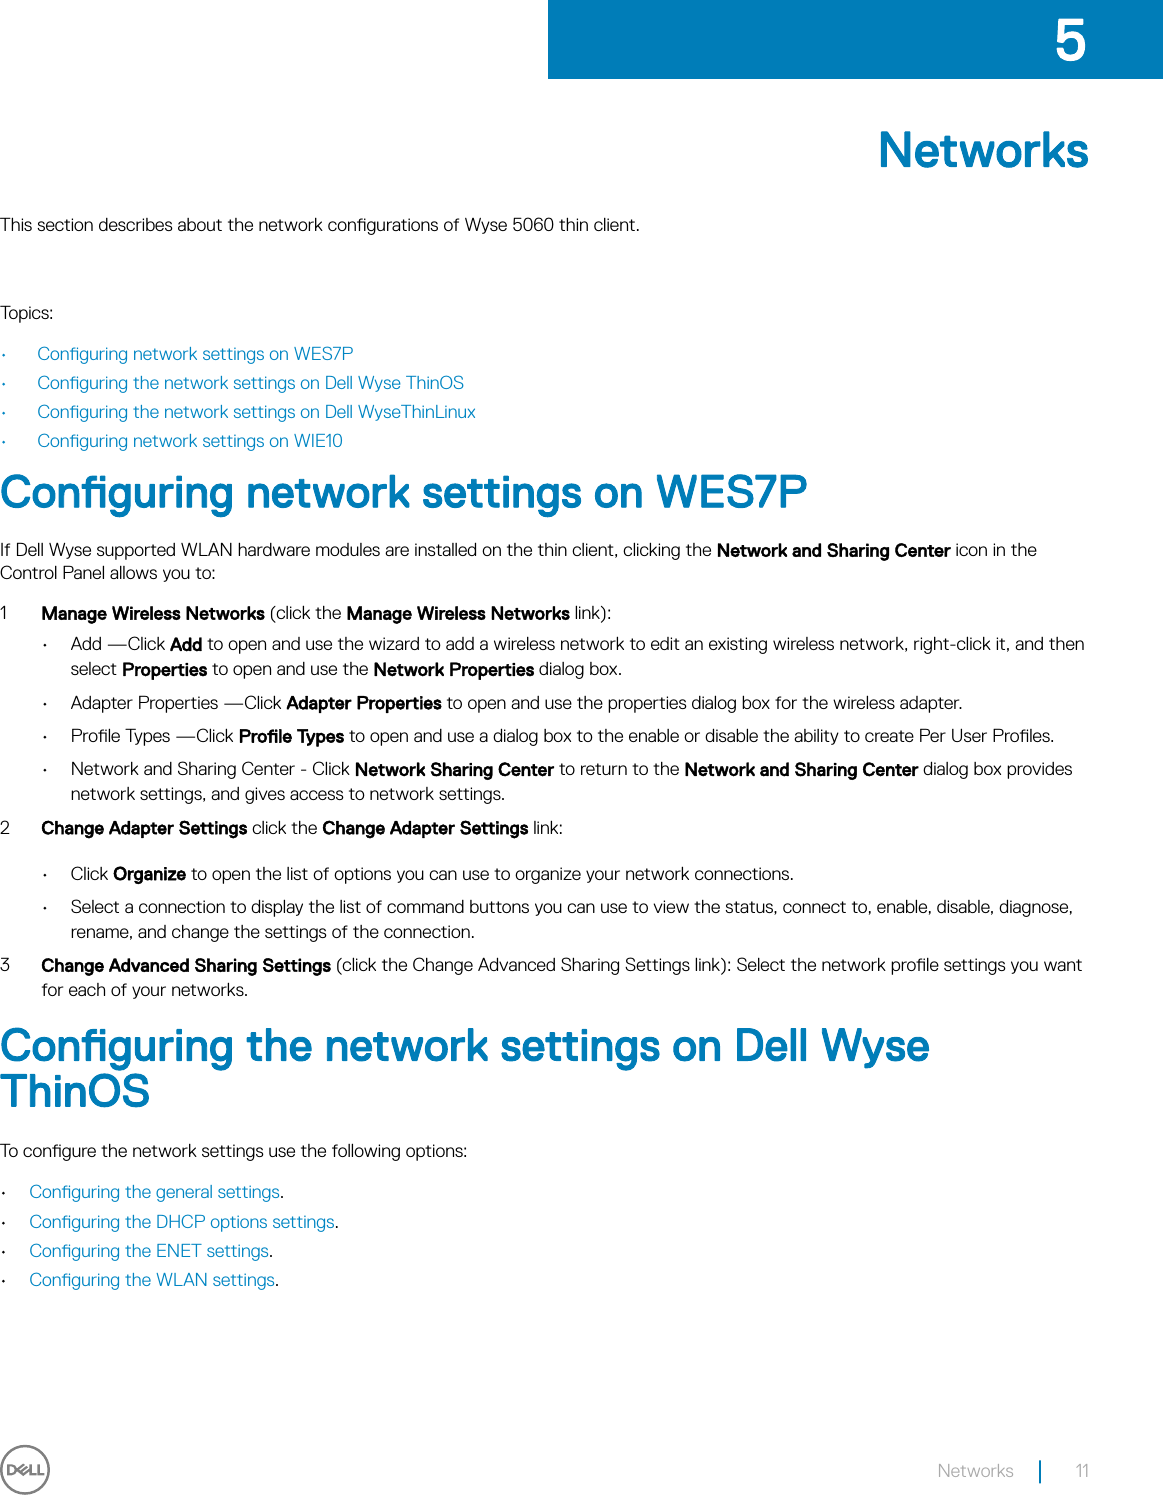 Dell Wyse 5060 thin client User Guide Manual User's Guide3 En us